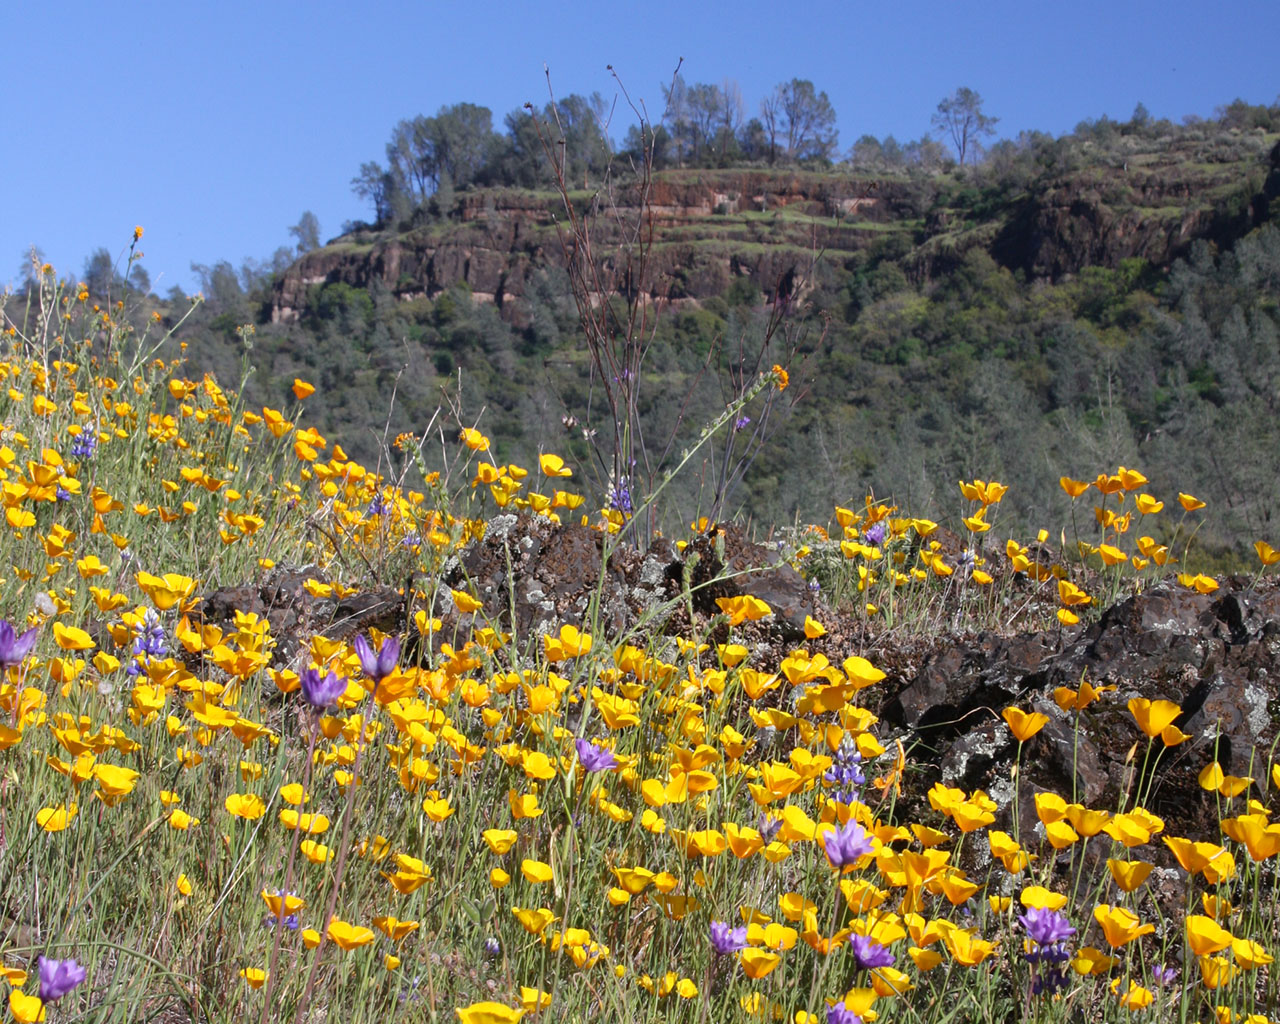 Wildflowers on a mountain side